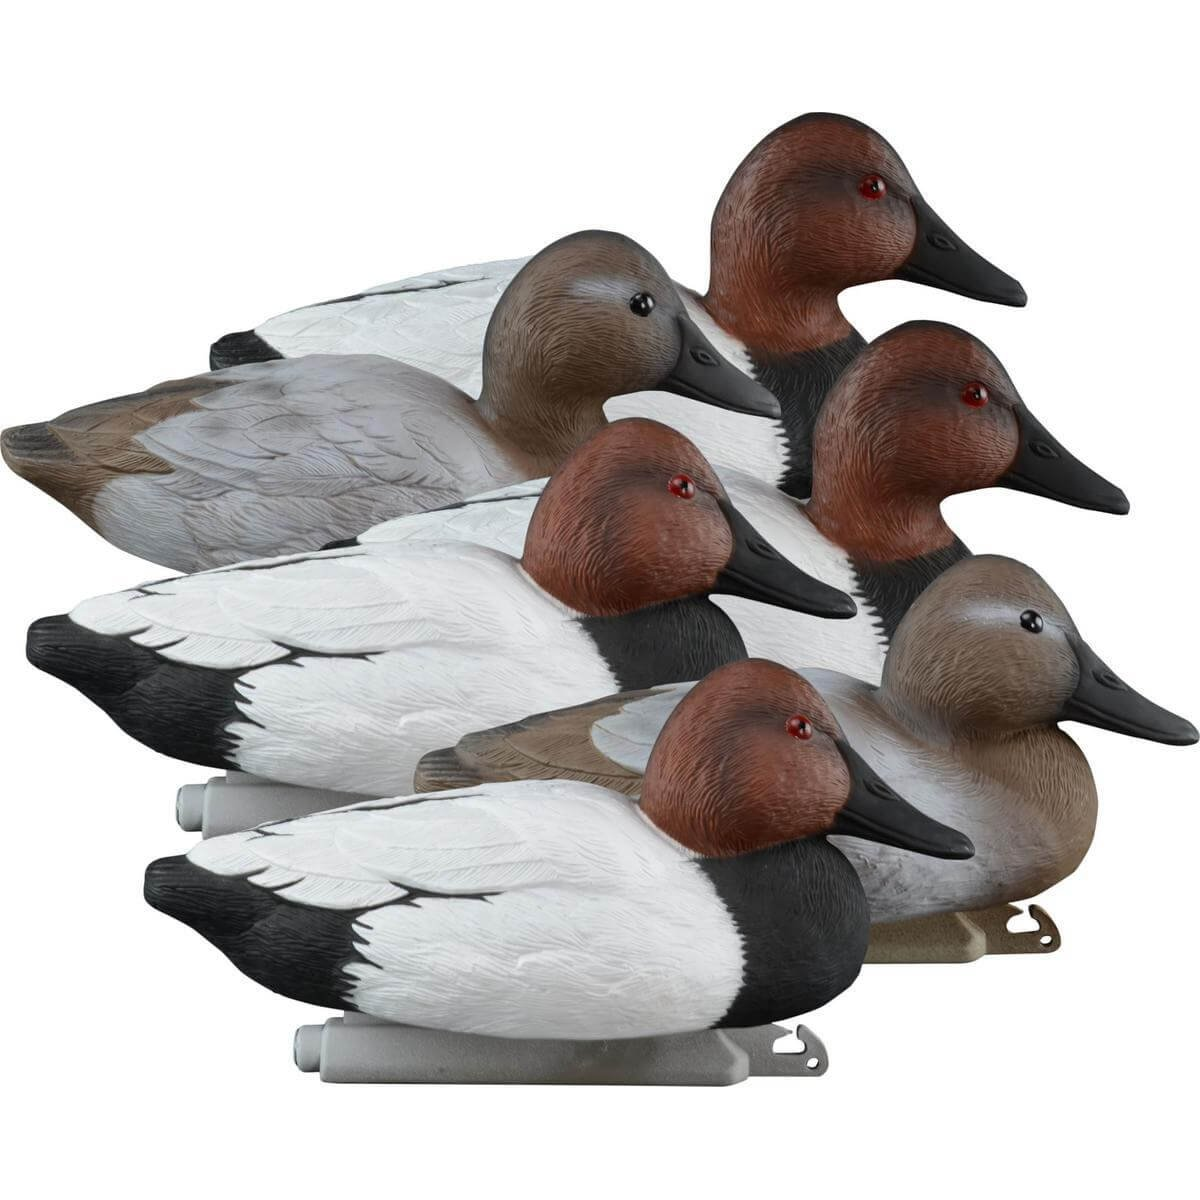 Higdon Outdoors Standard Canvasback Decoys, Foam Filled by Higdon Decoys (Image #1)